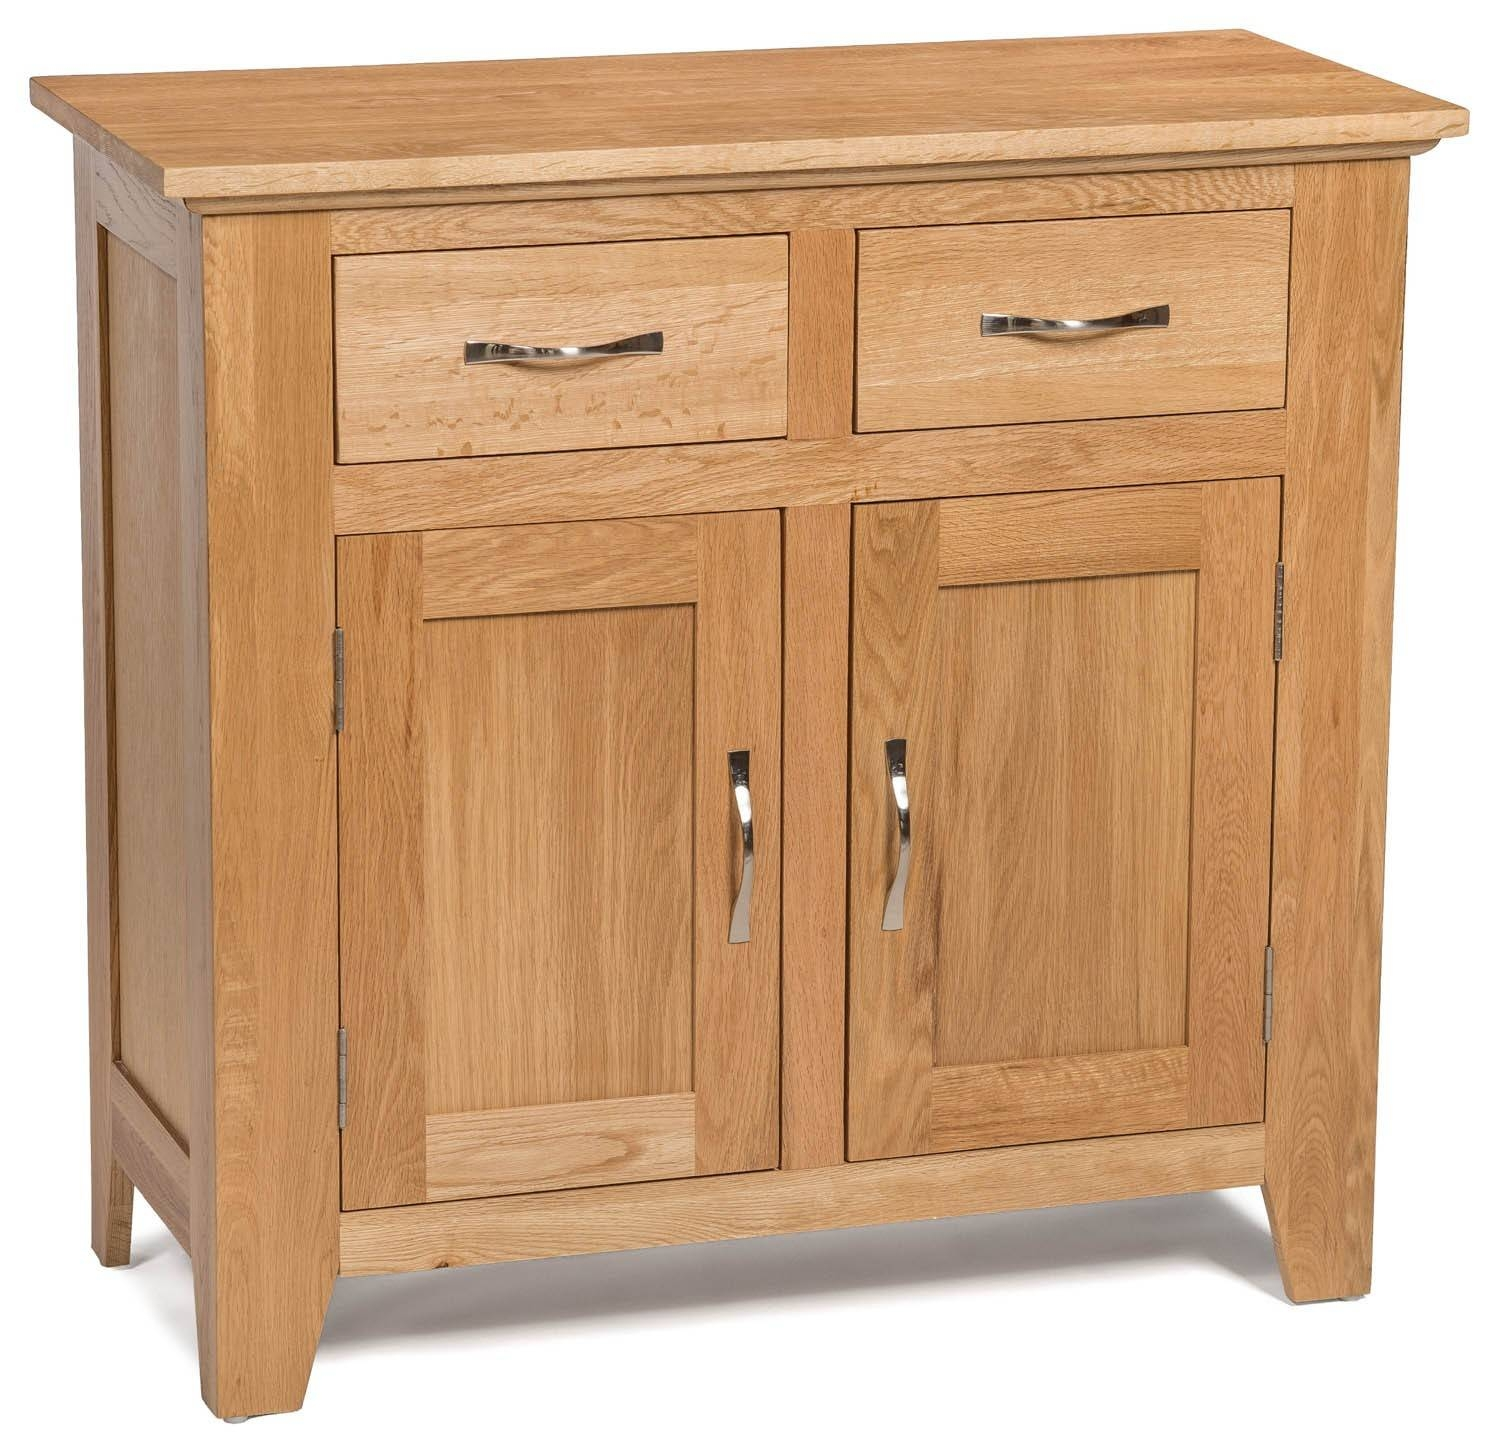 Camberley Oak Small 2 Door 2 Drawer Sideboard - Sideboards & Tops pertaining to Small Wooden Sideboards (Image 9 of 30)